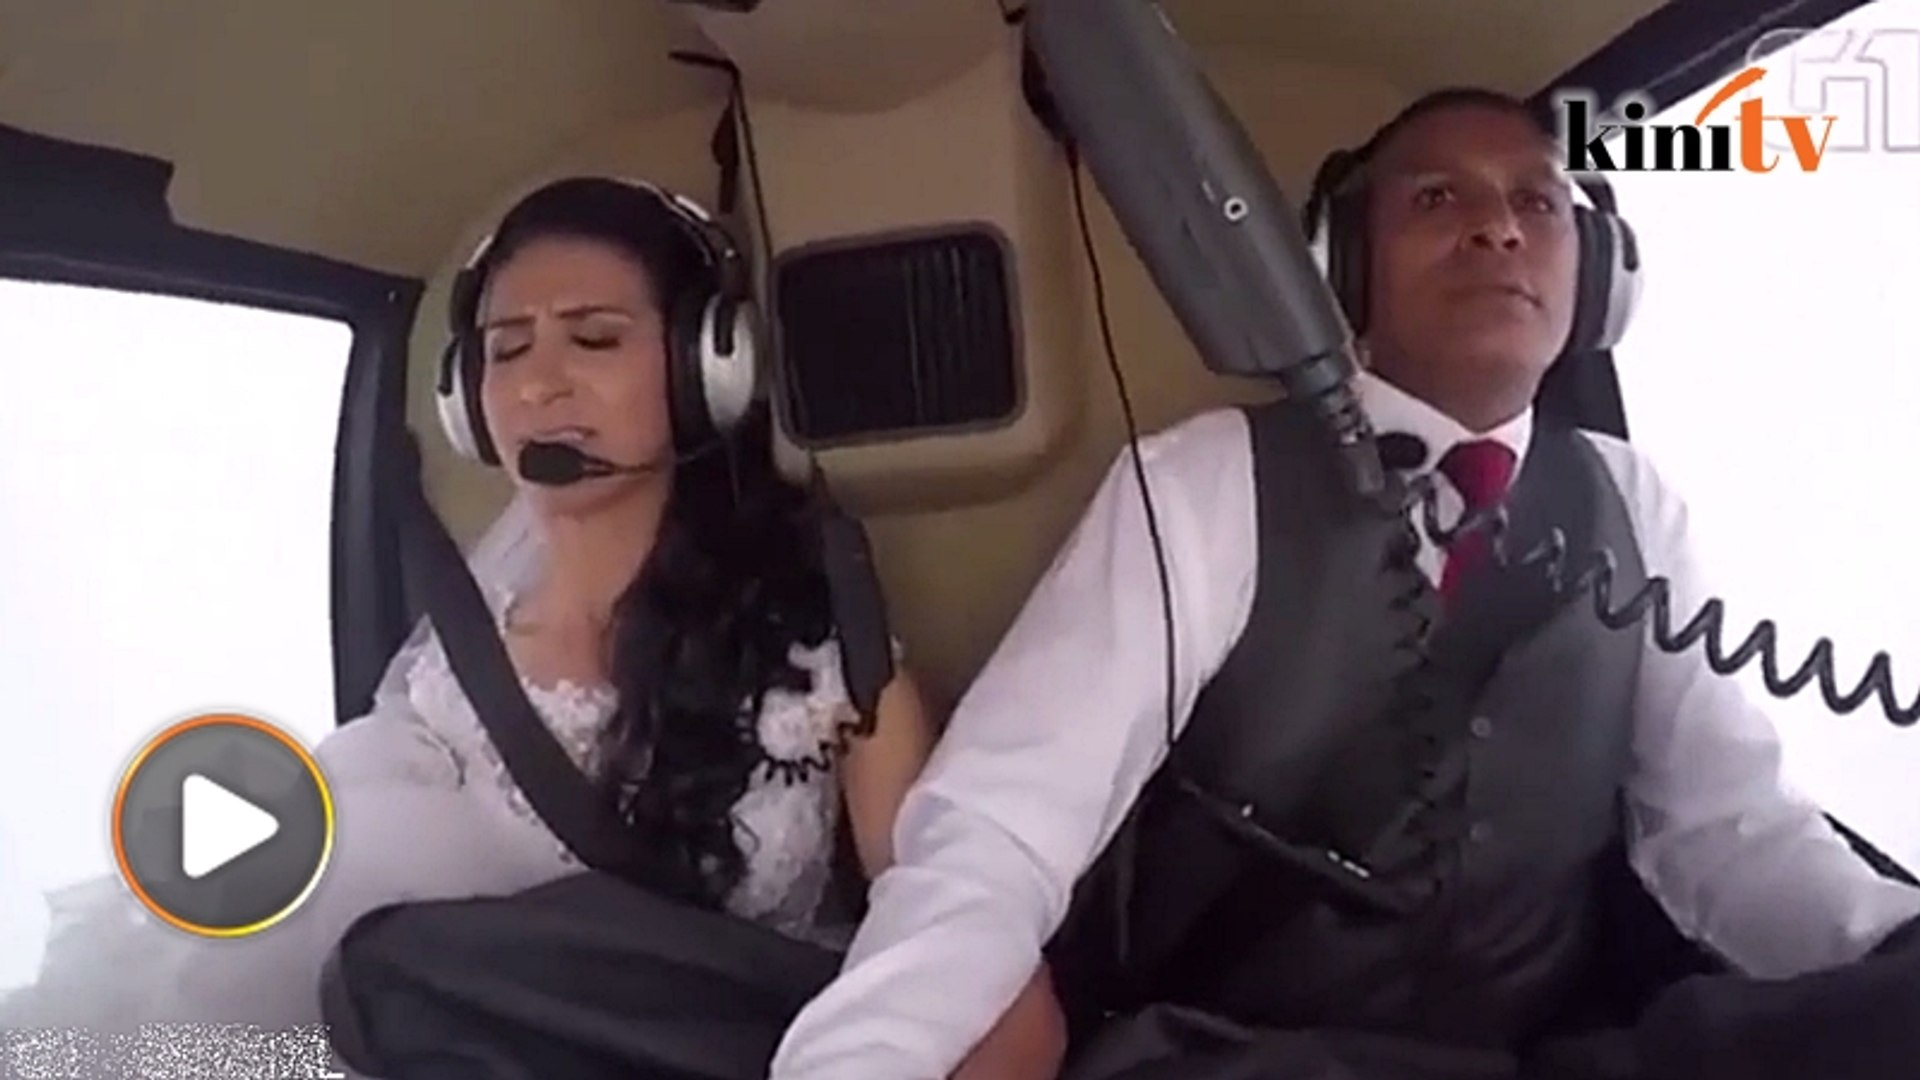 Bride, three others killed in helicopter crash on the way to wedding in Brazil